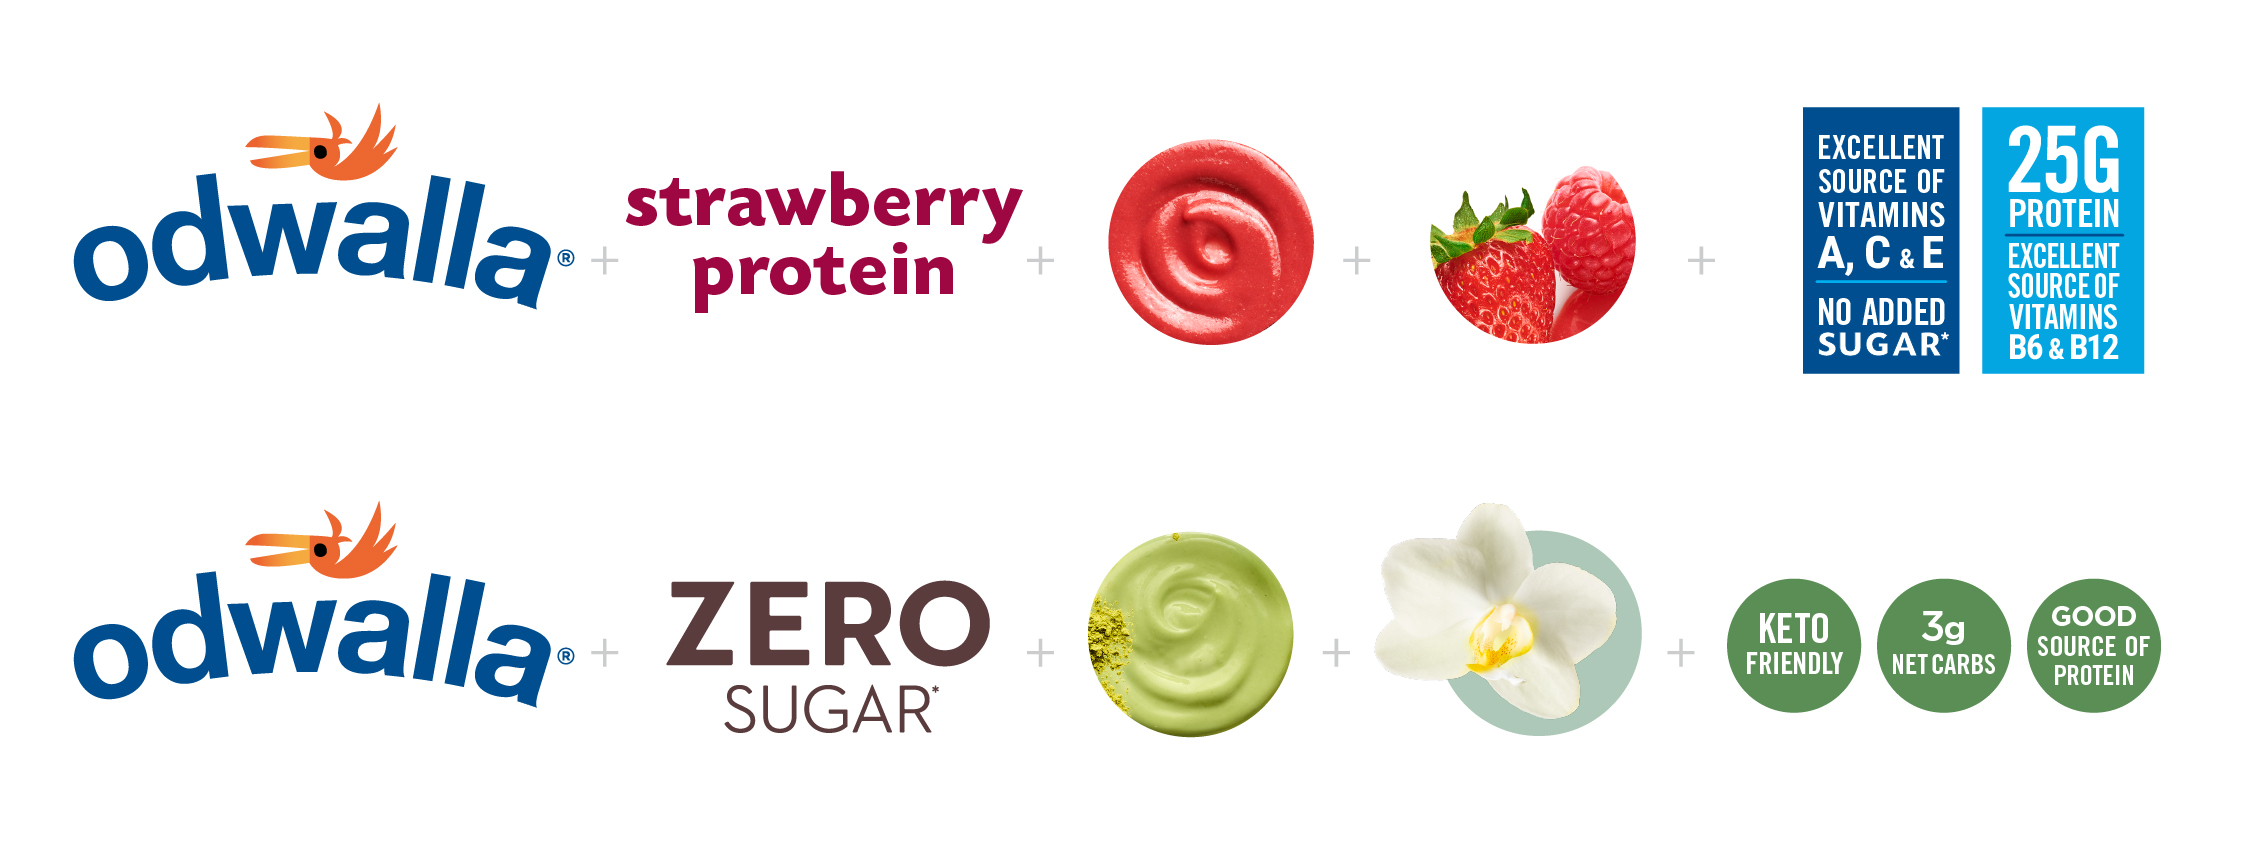 Odwalla Brand system for smootie and zero sugar